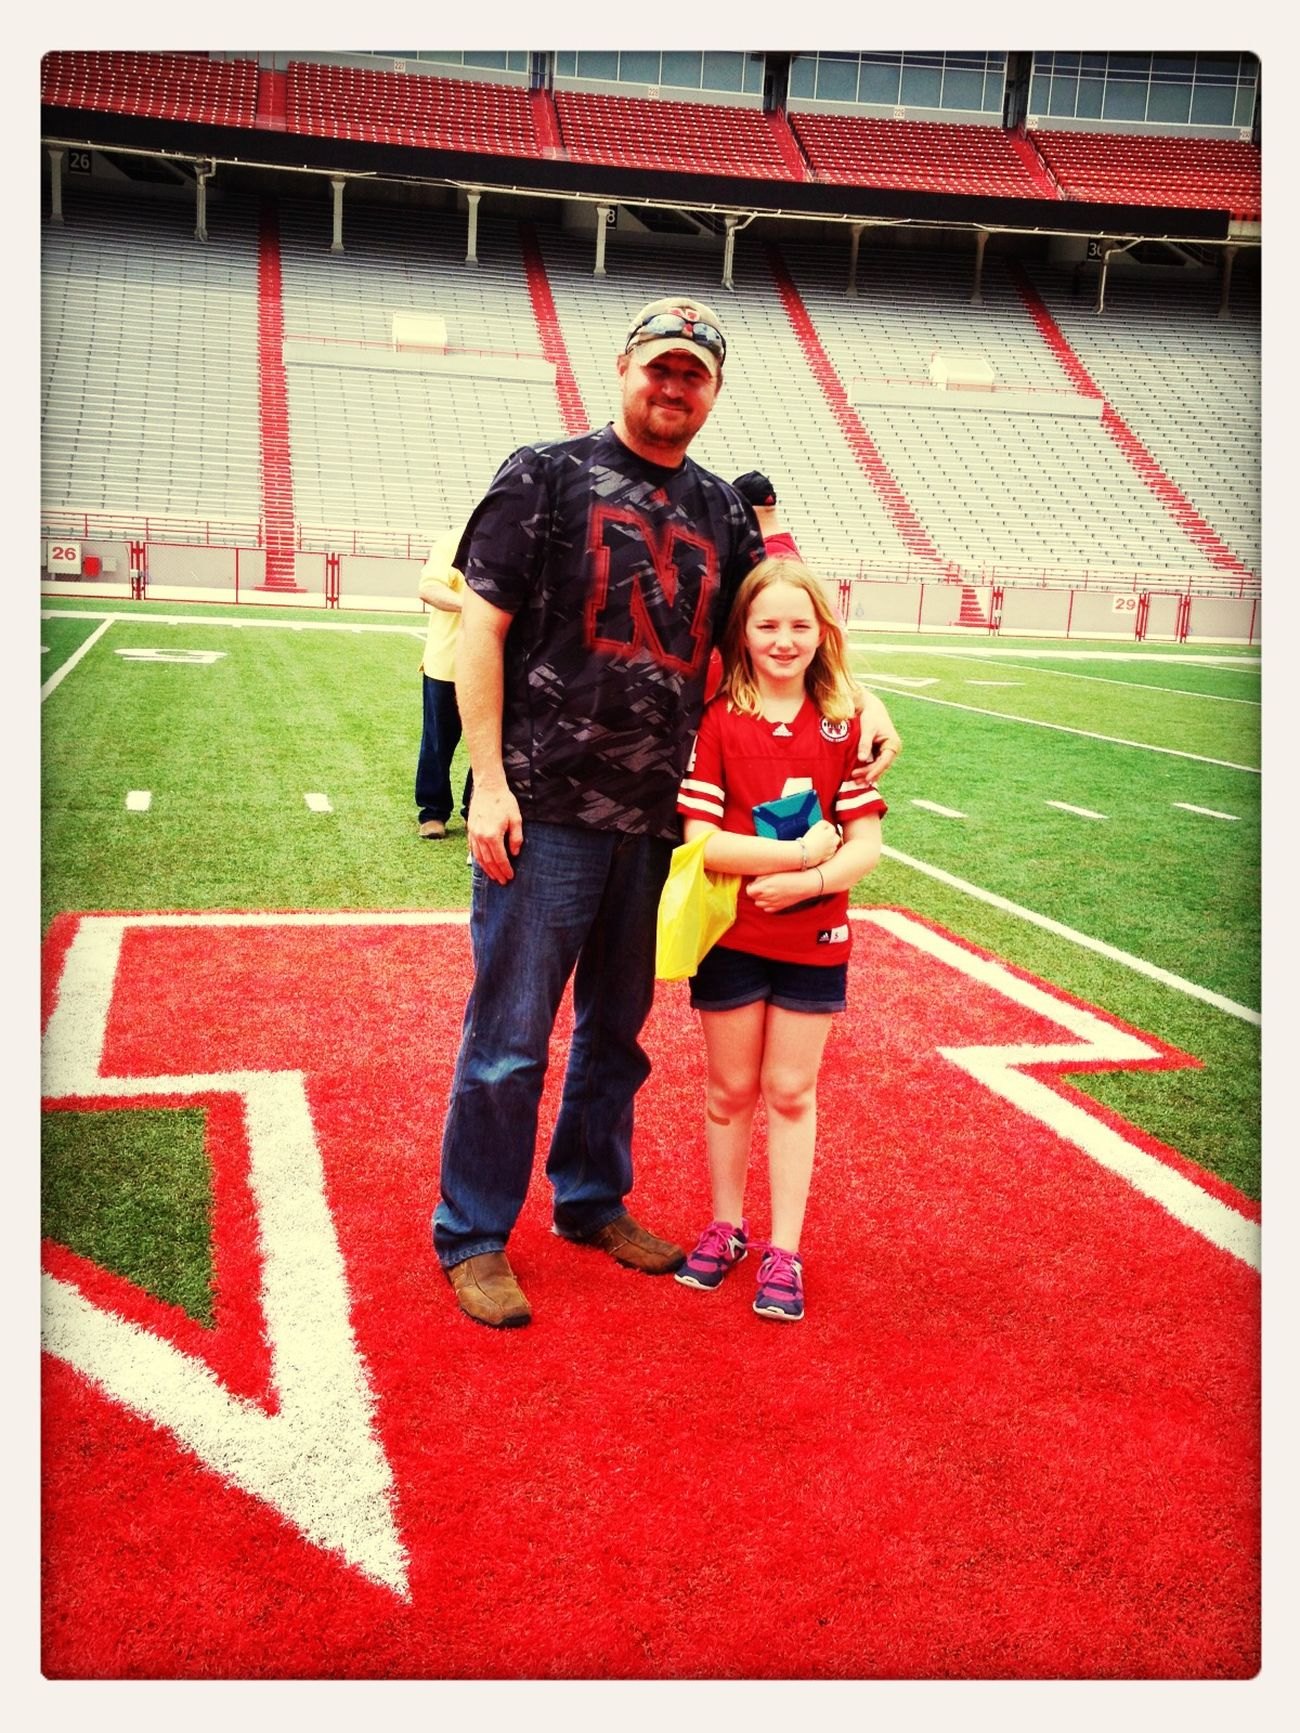 Go Big Red Cornhuskers Enjoying Life